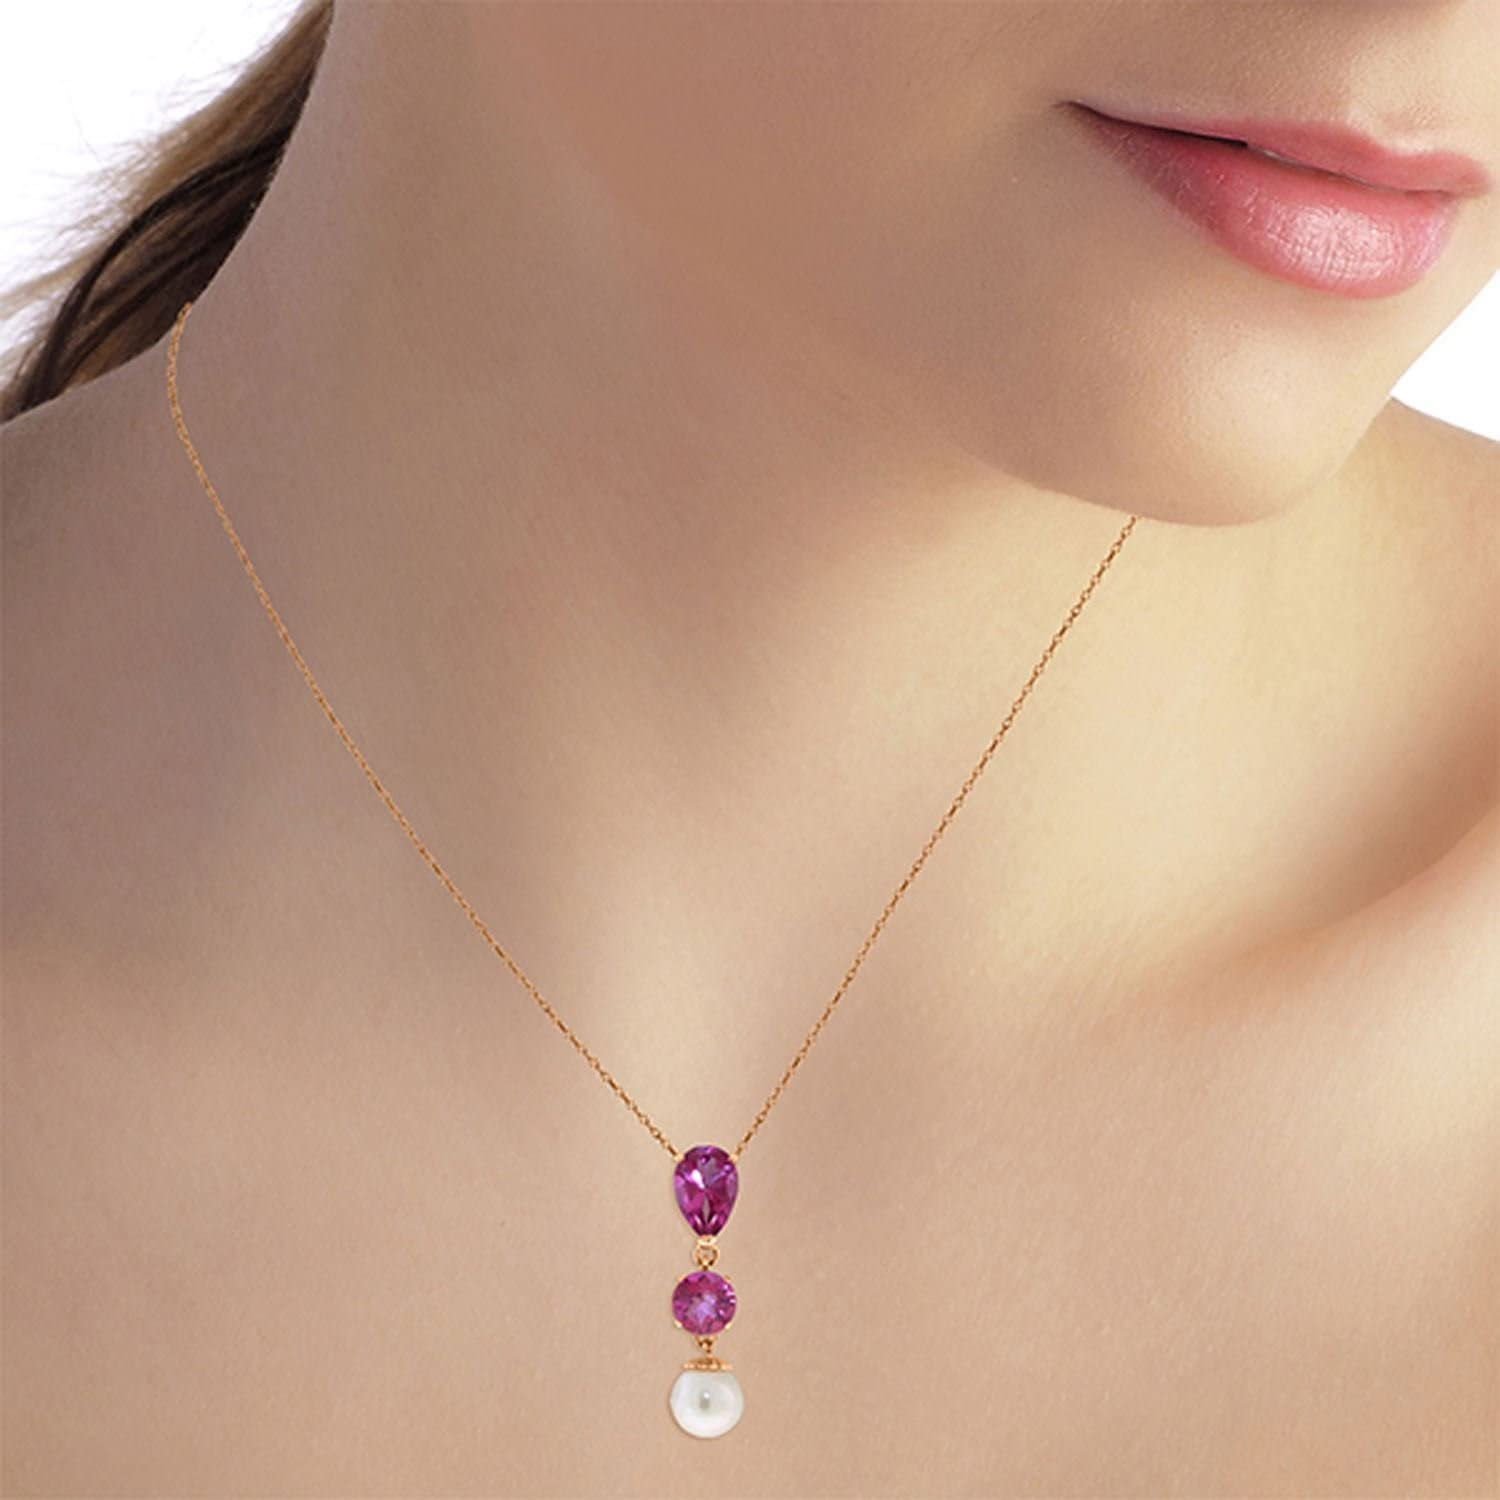 ALARRI 5.25 Carat 14K Solid Rose Gold Necklace Pink Topaz Pearl with 24 Inch Chain Length